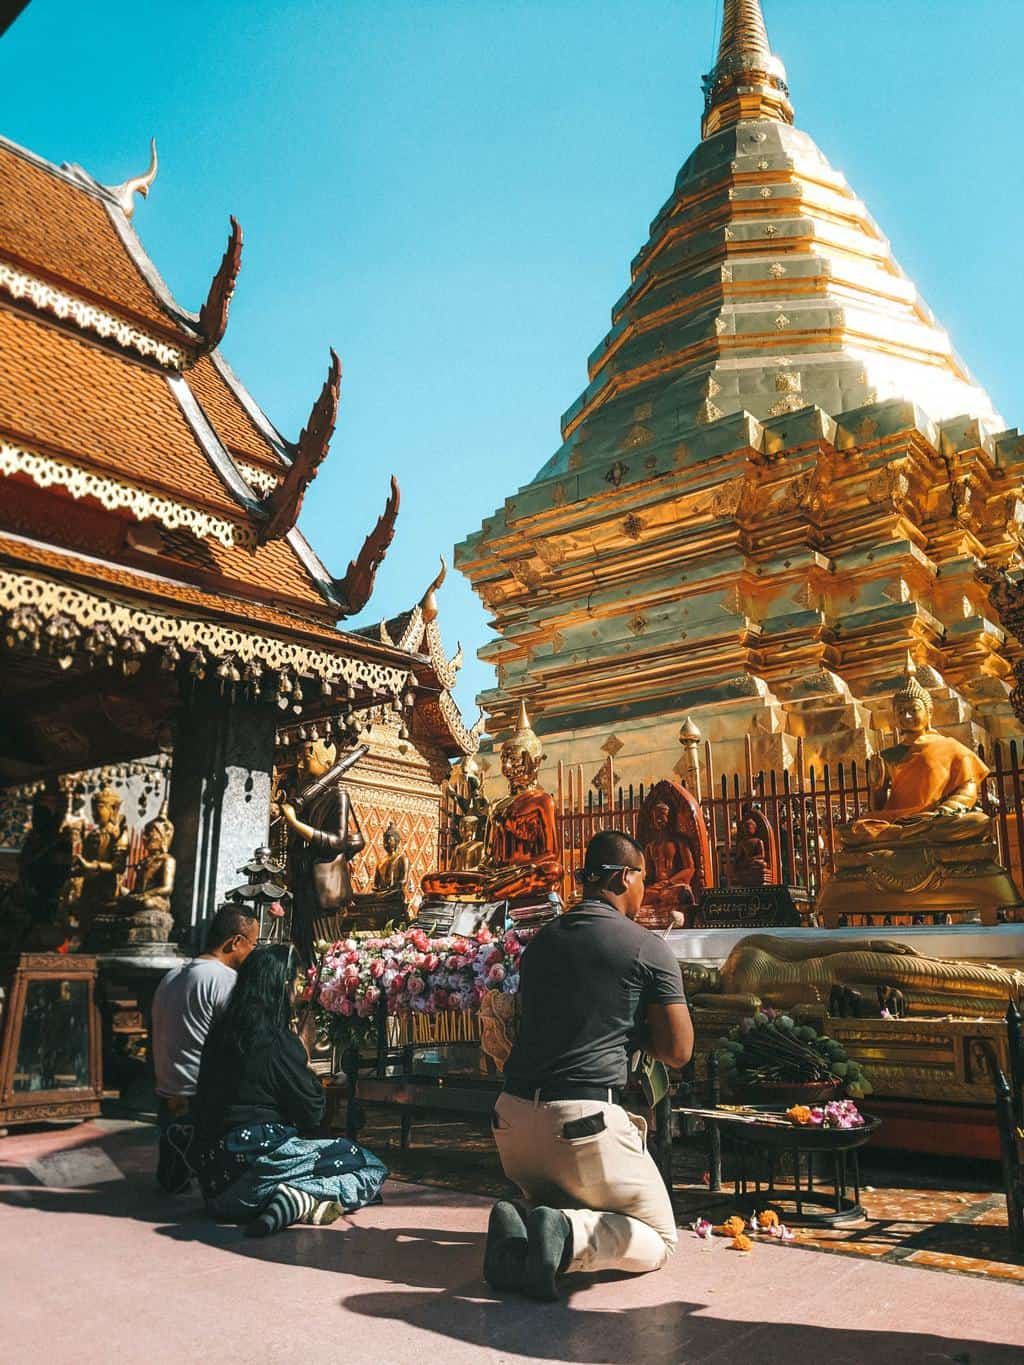 some people kneel in prayer before a golden structure in a temple, planning a trip to thailand